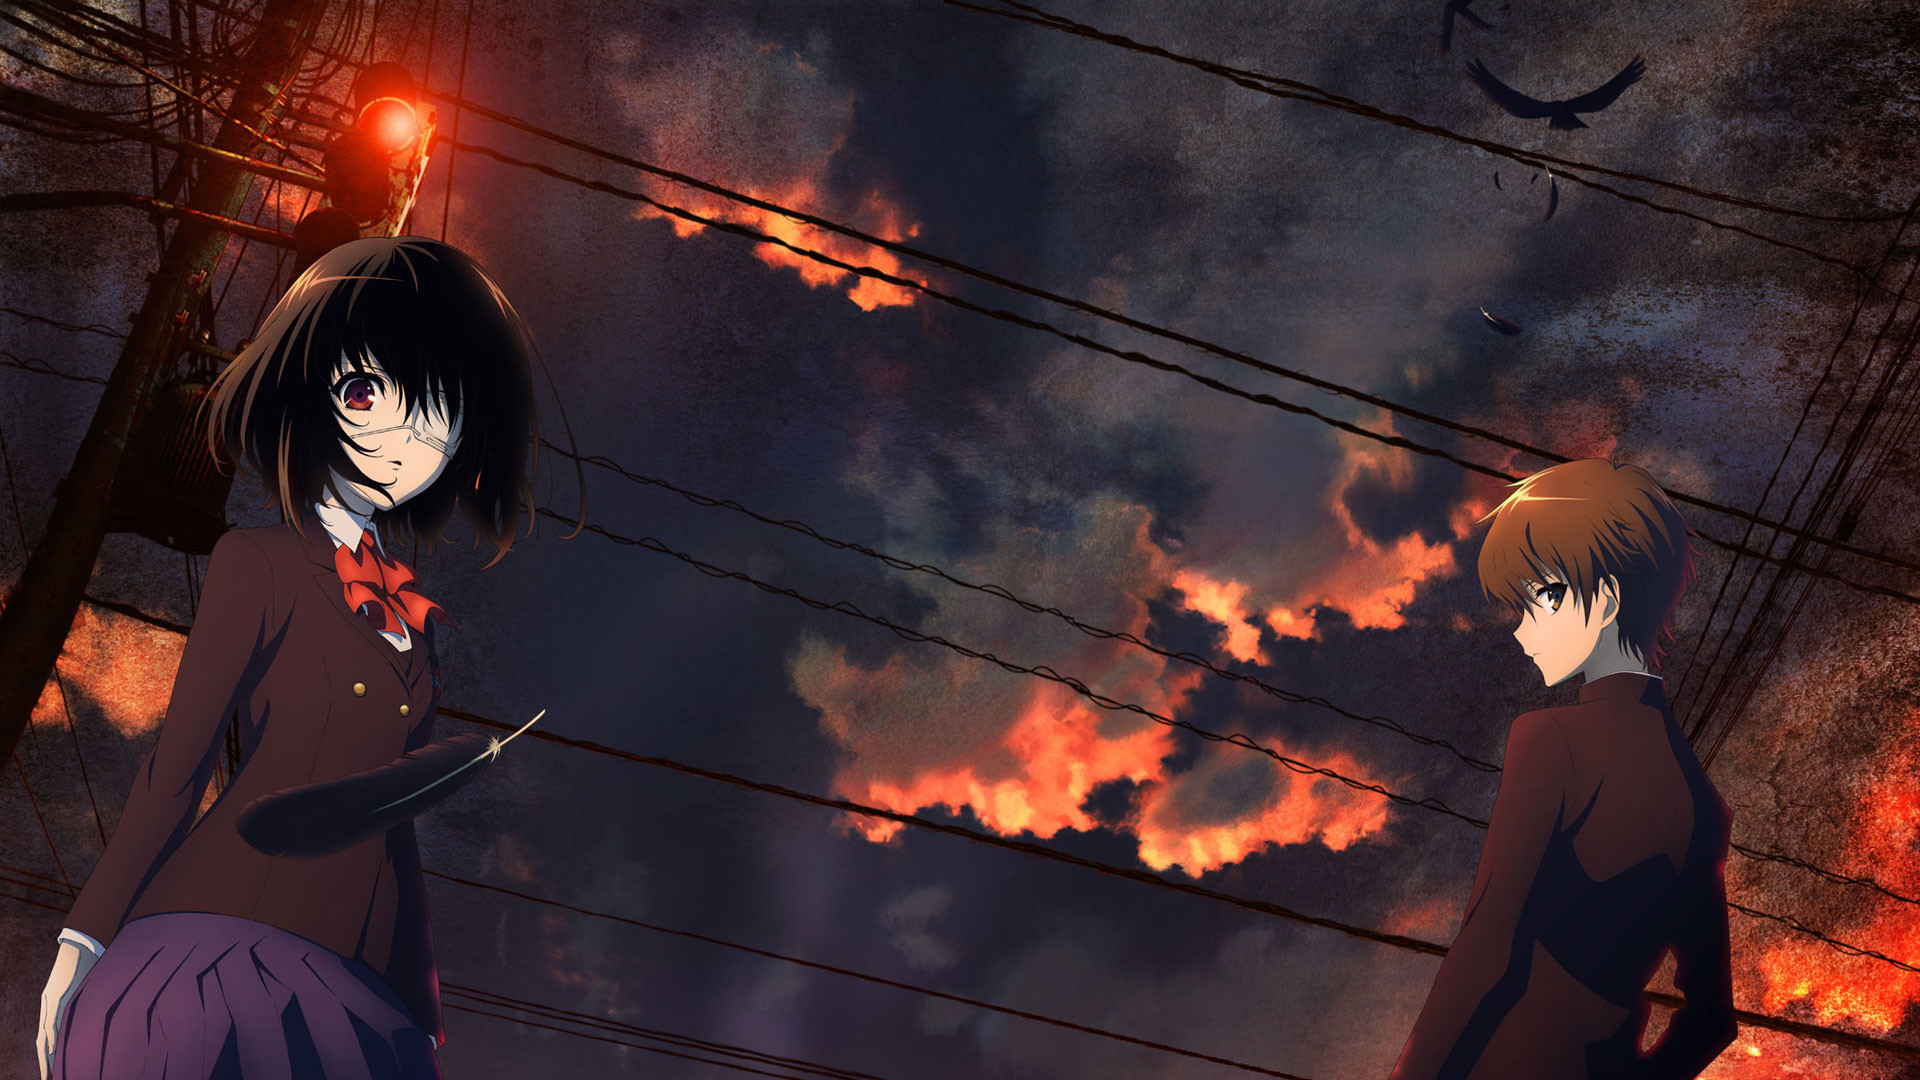 Anime wallpaper 1366x768 67 images - Another anime hd wallpaper ...